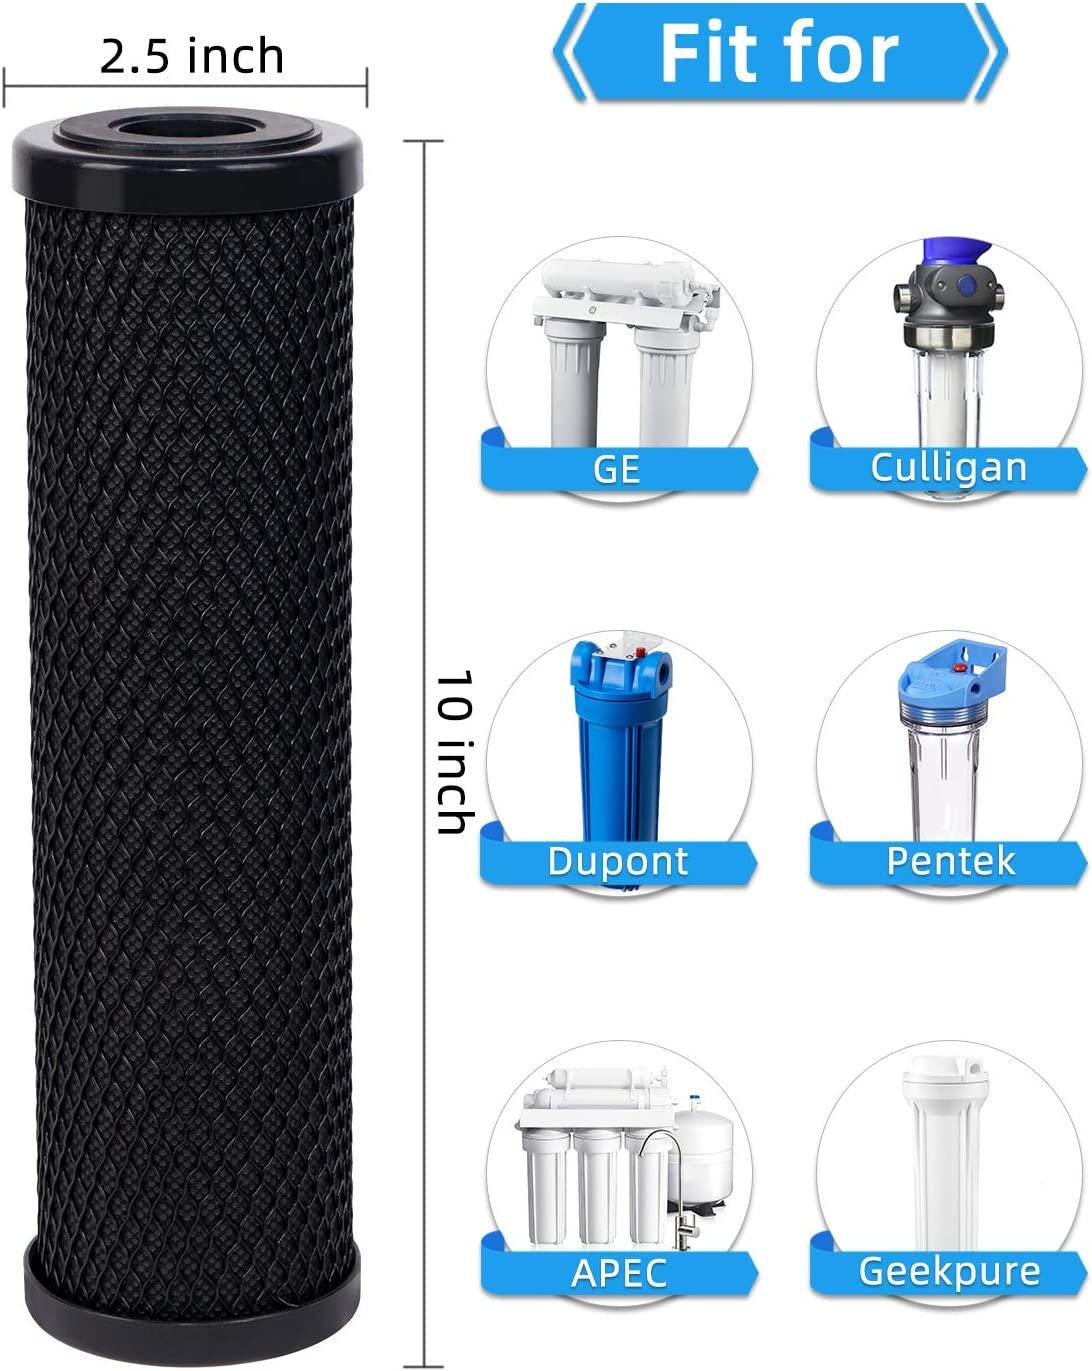 2.5 x 10 Whole House Replacement Water Filter for Countertop /& RO /& Whole House Water Filter System Fil-fresh 1 Micron Carbon Water Filter 4-Packs